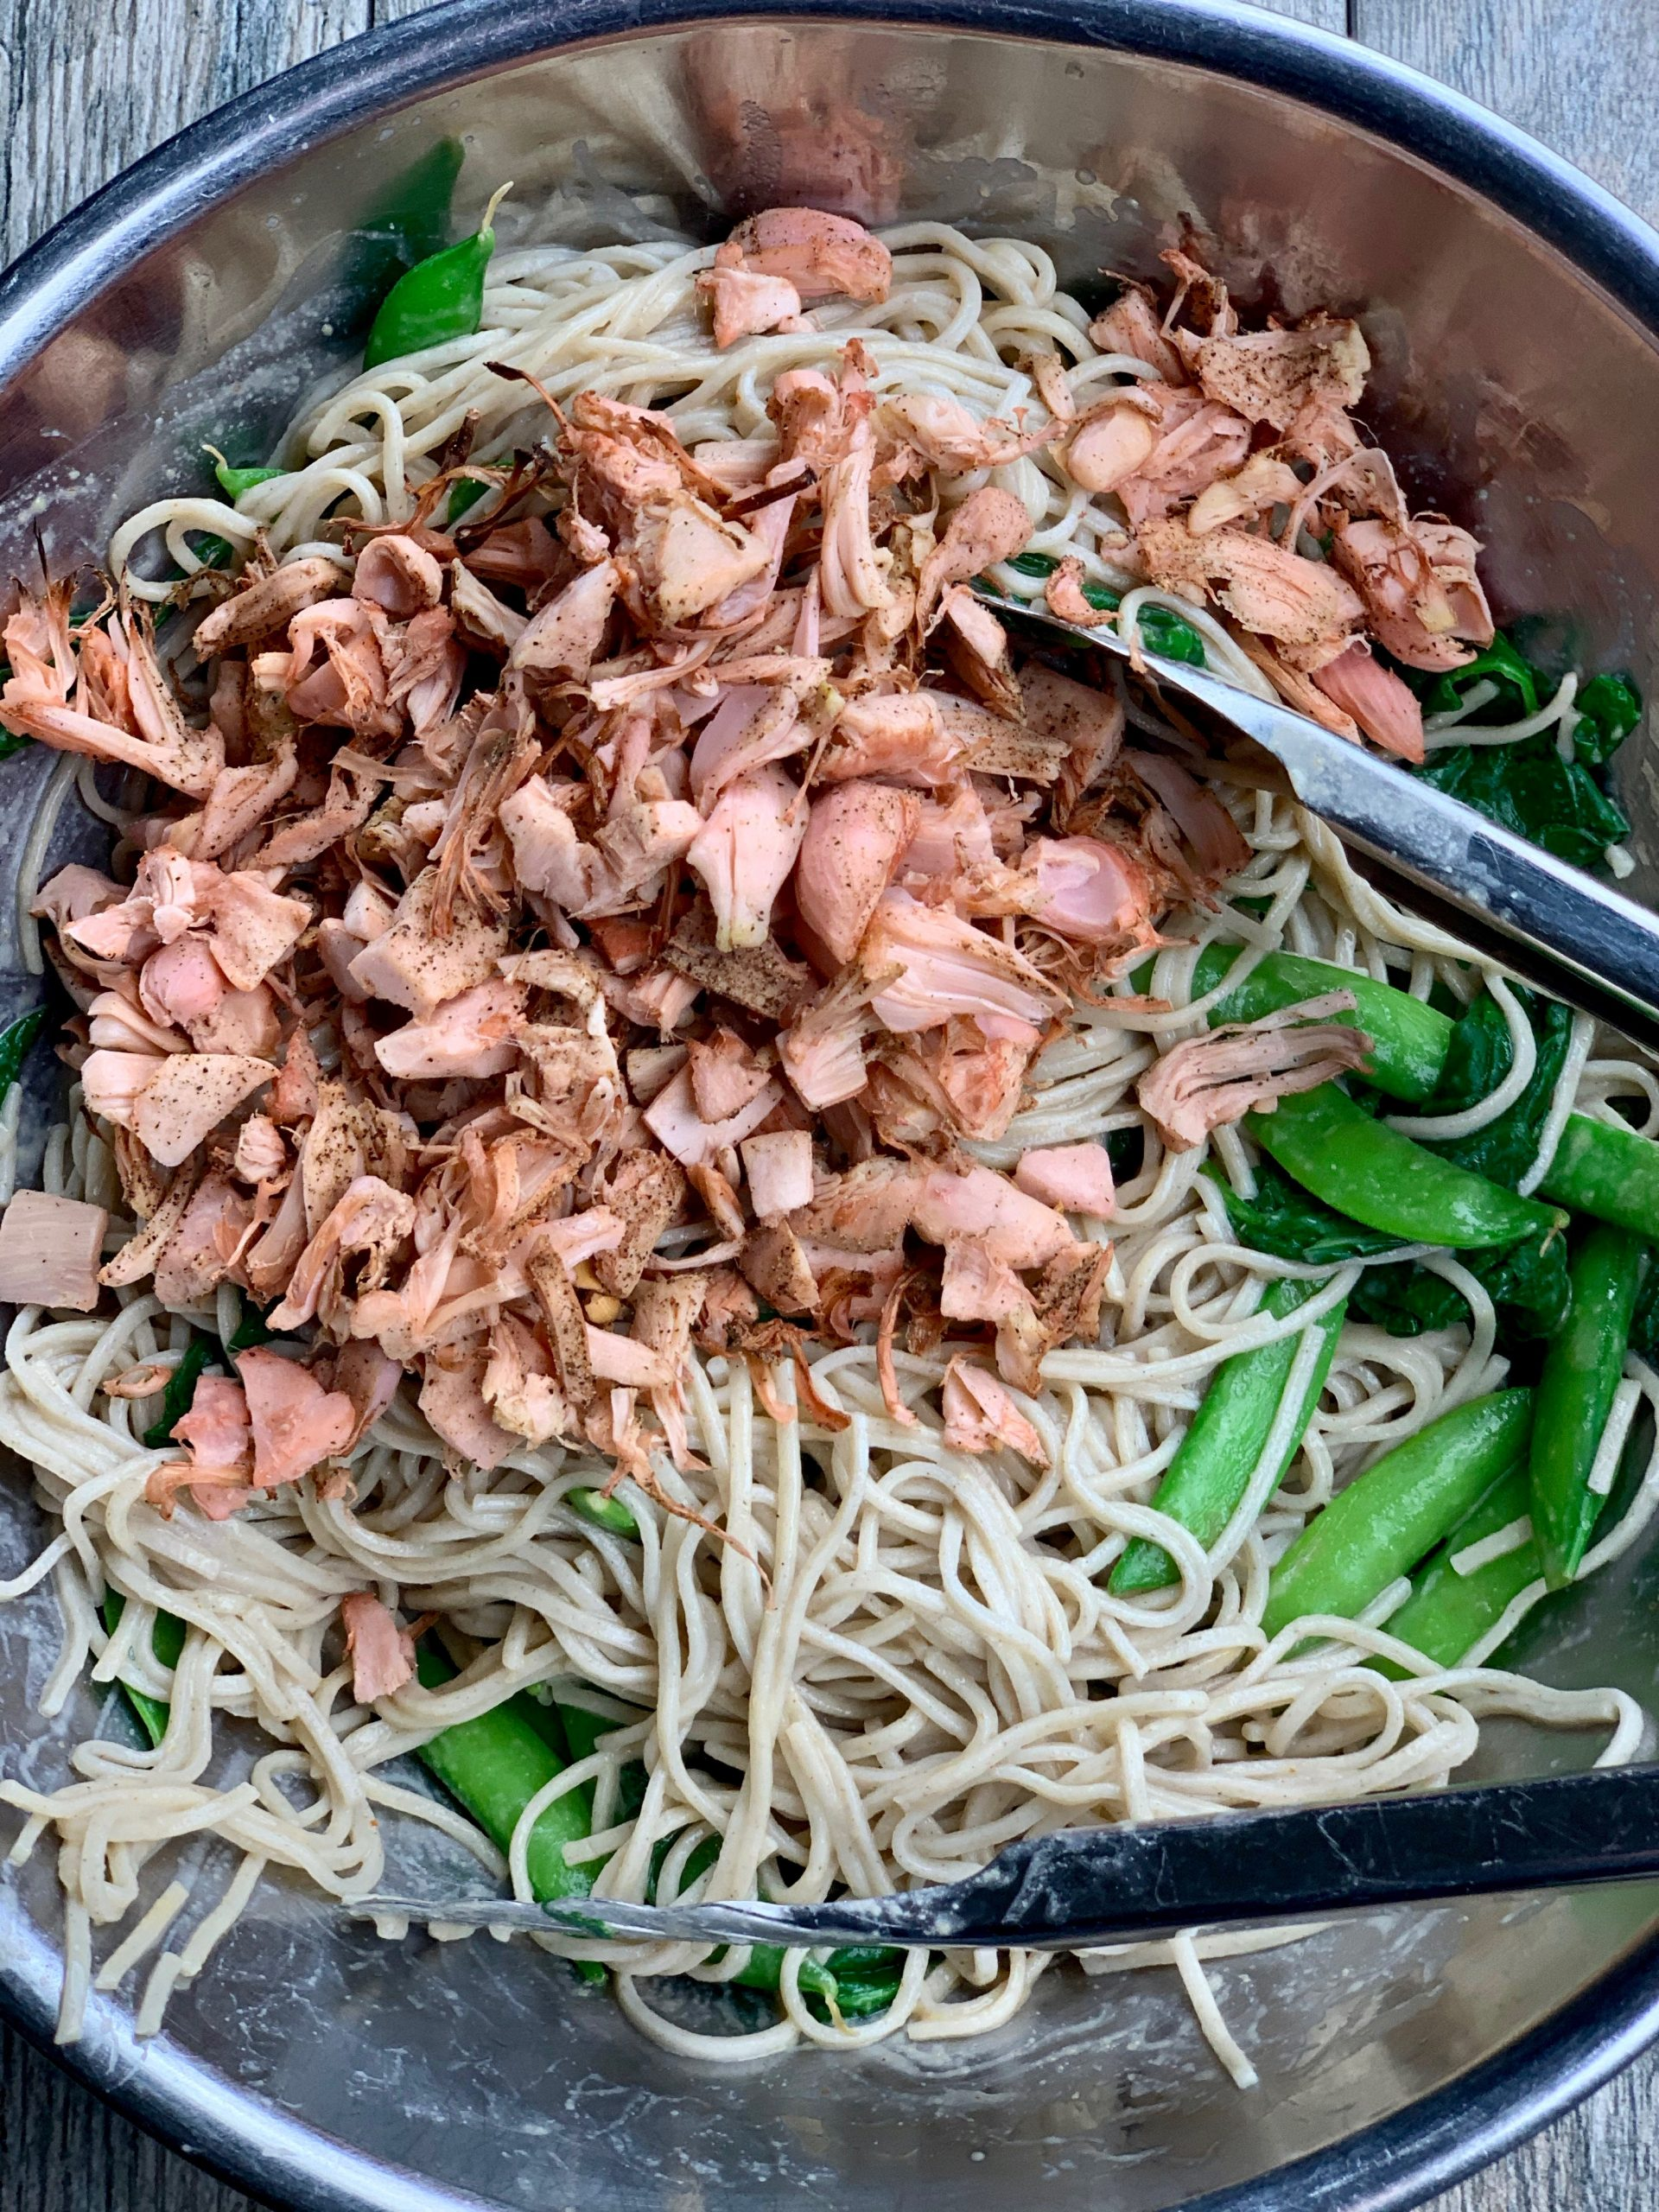 Spicy Soba Noodles with Jackfruit And Sugar Snap Peas Ingredients